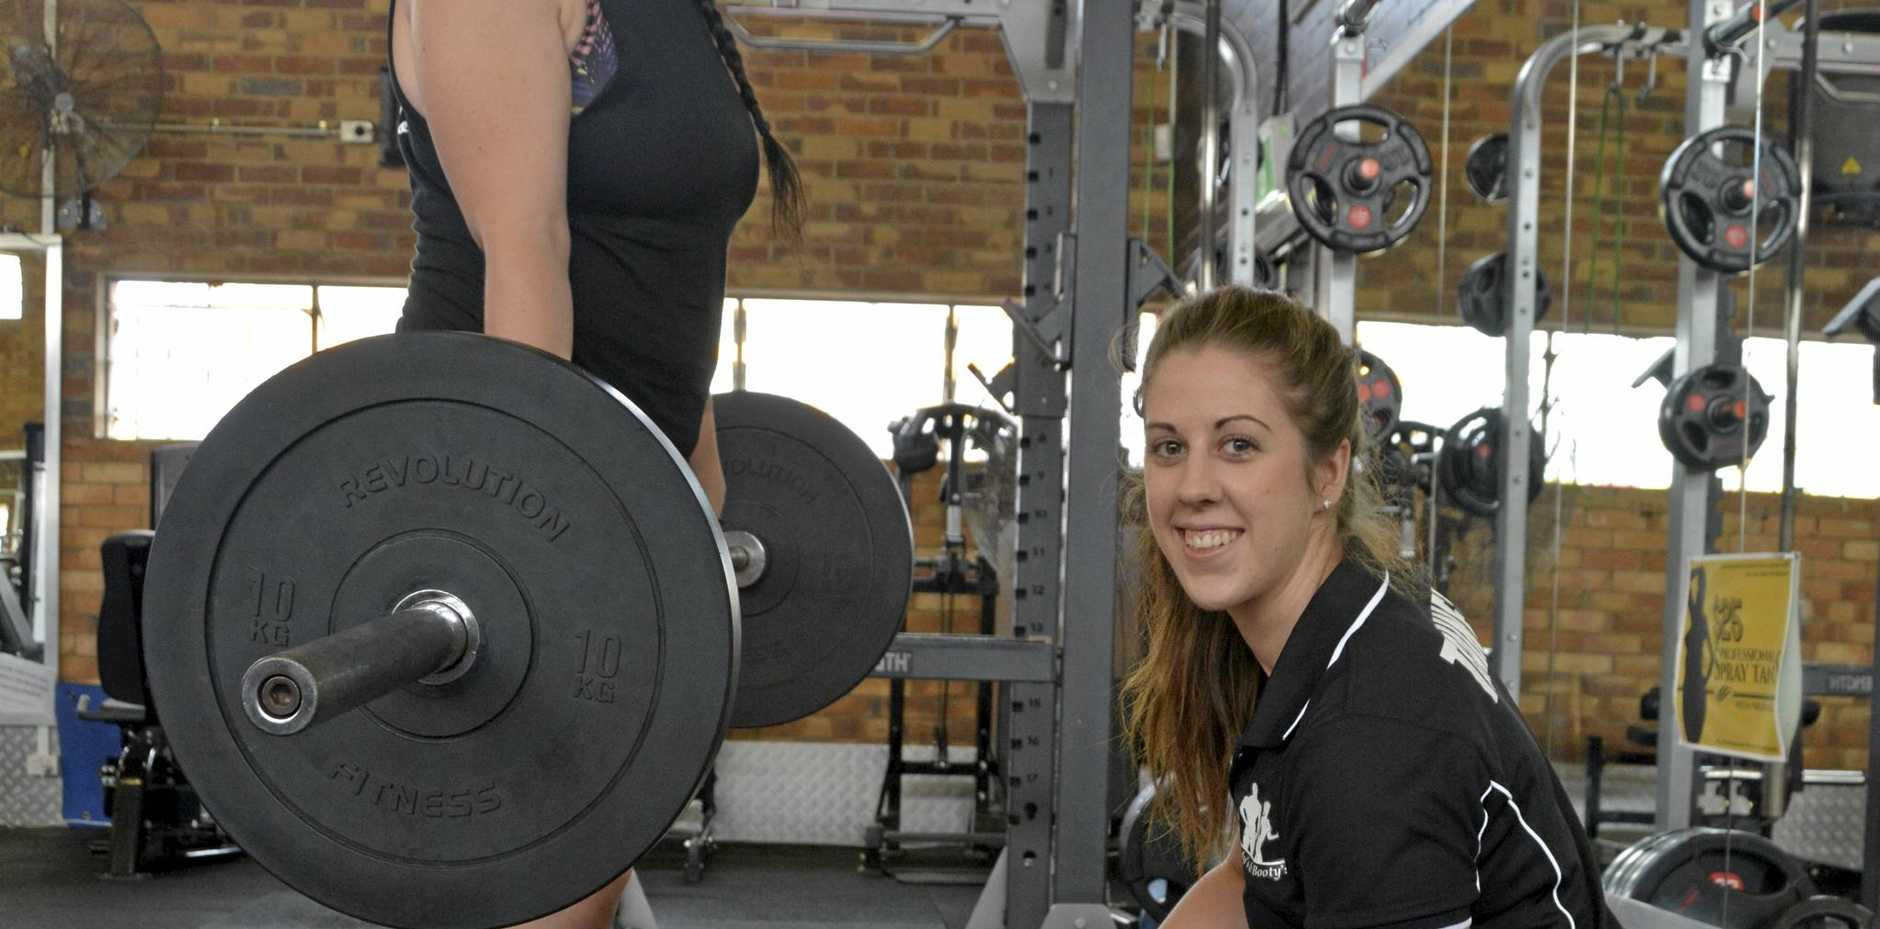 TRANSFORMED: Hayley Hunter (left) lost 20kg in 16 weeks, with the help of trainer Mandee Harbort, by learning how to transform her life by eating more and training correctly.